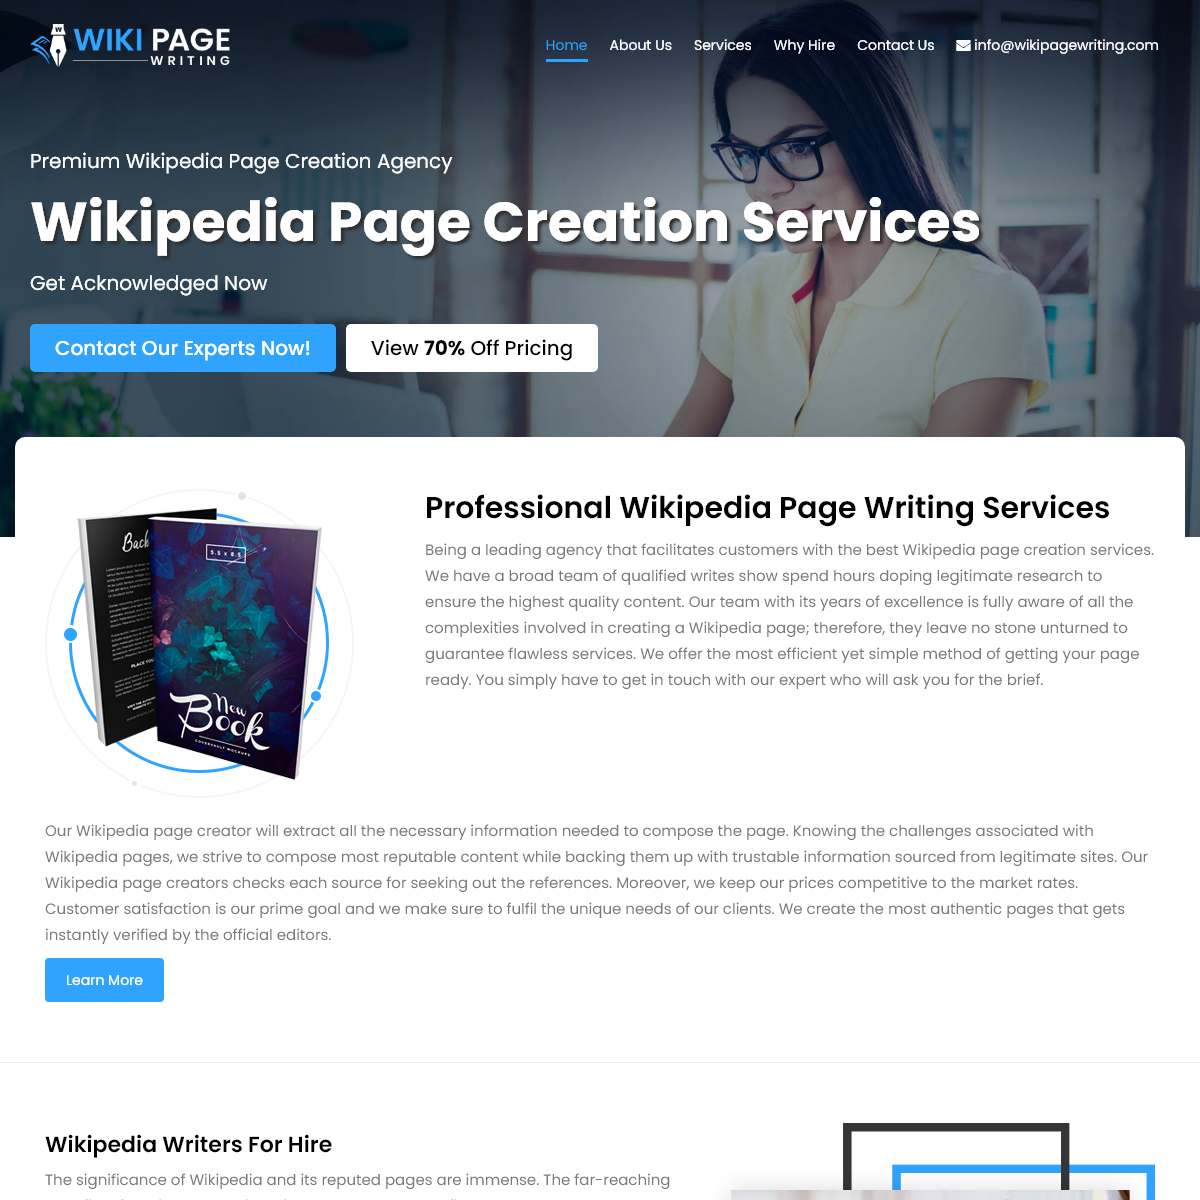 Wikipedia Page Writing & Creation Services - Professional Wikipedia Consultant for Page Editing Services by Best Wiki Page Creat